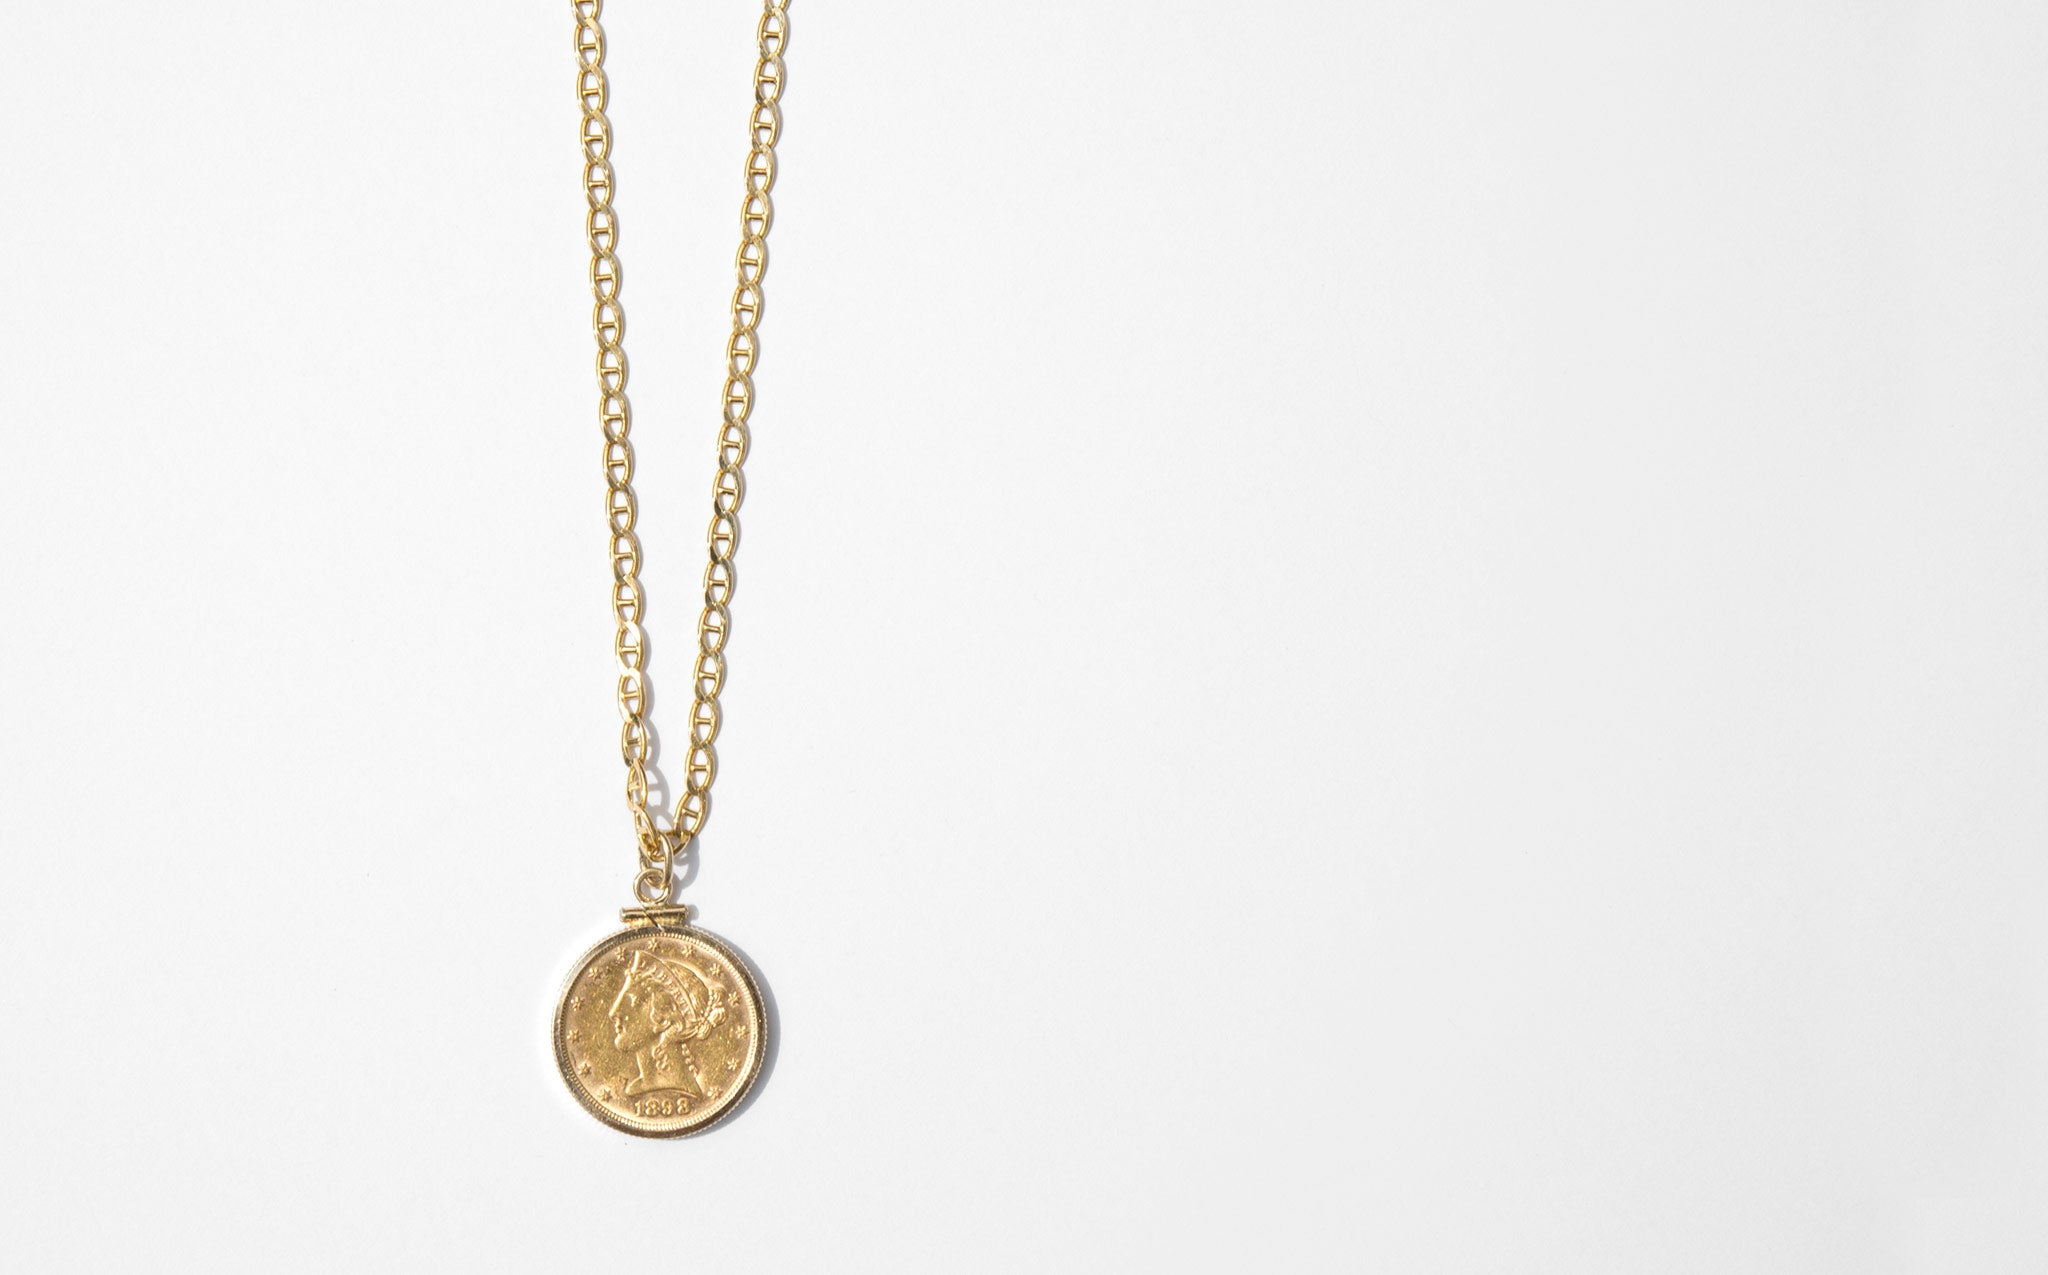 22K Gold Liberty Head Pendant Necklace